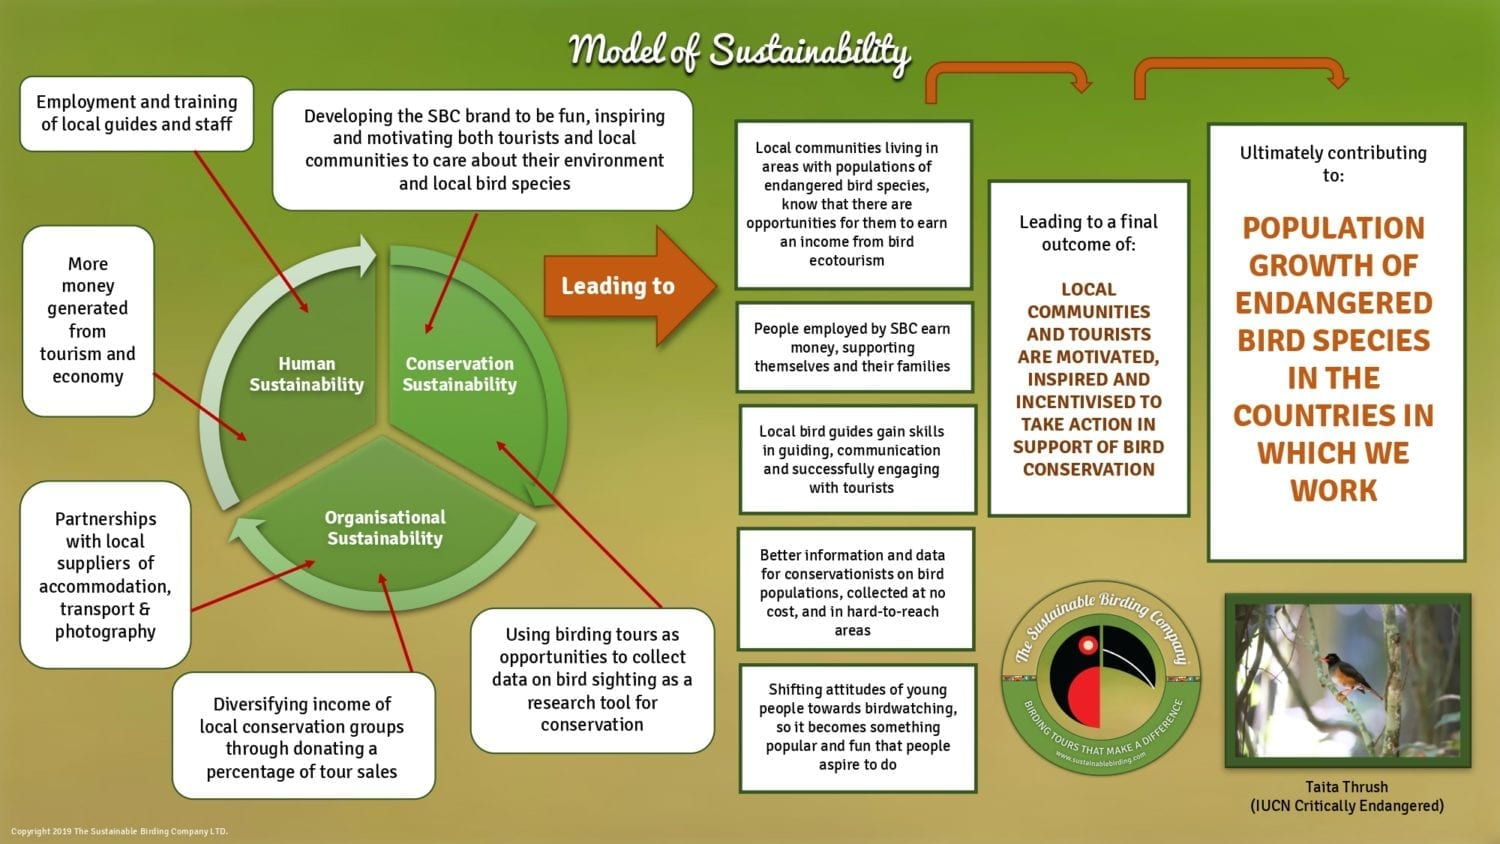 Model of Sustainability on our Uganda Birding Tour and Kenya Birding Tours